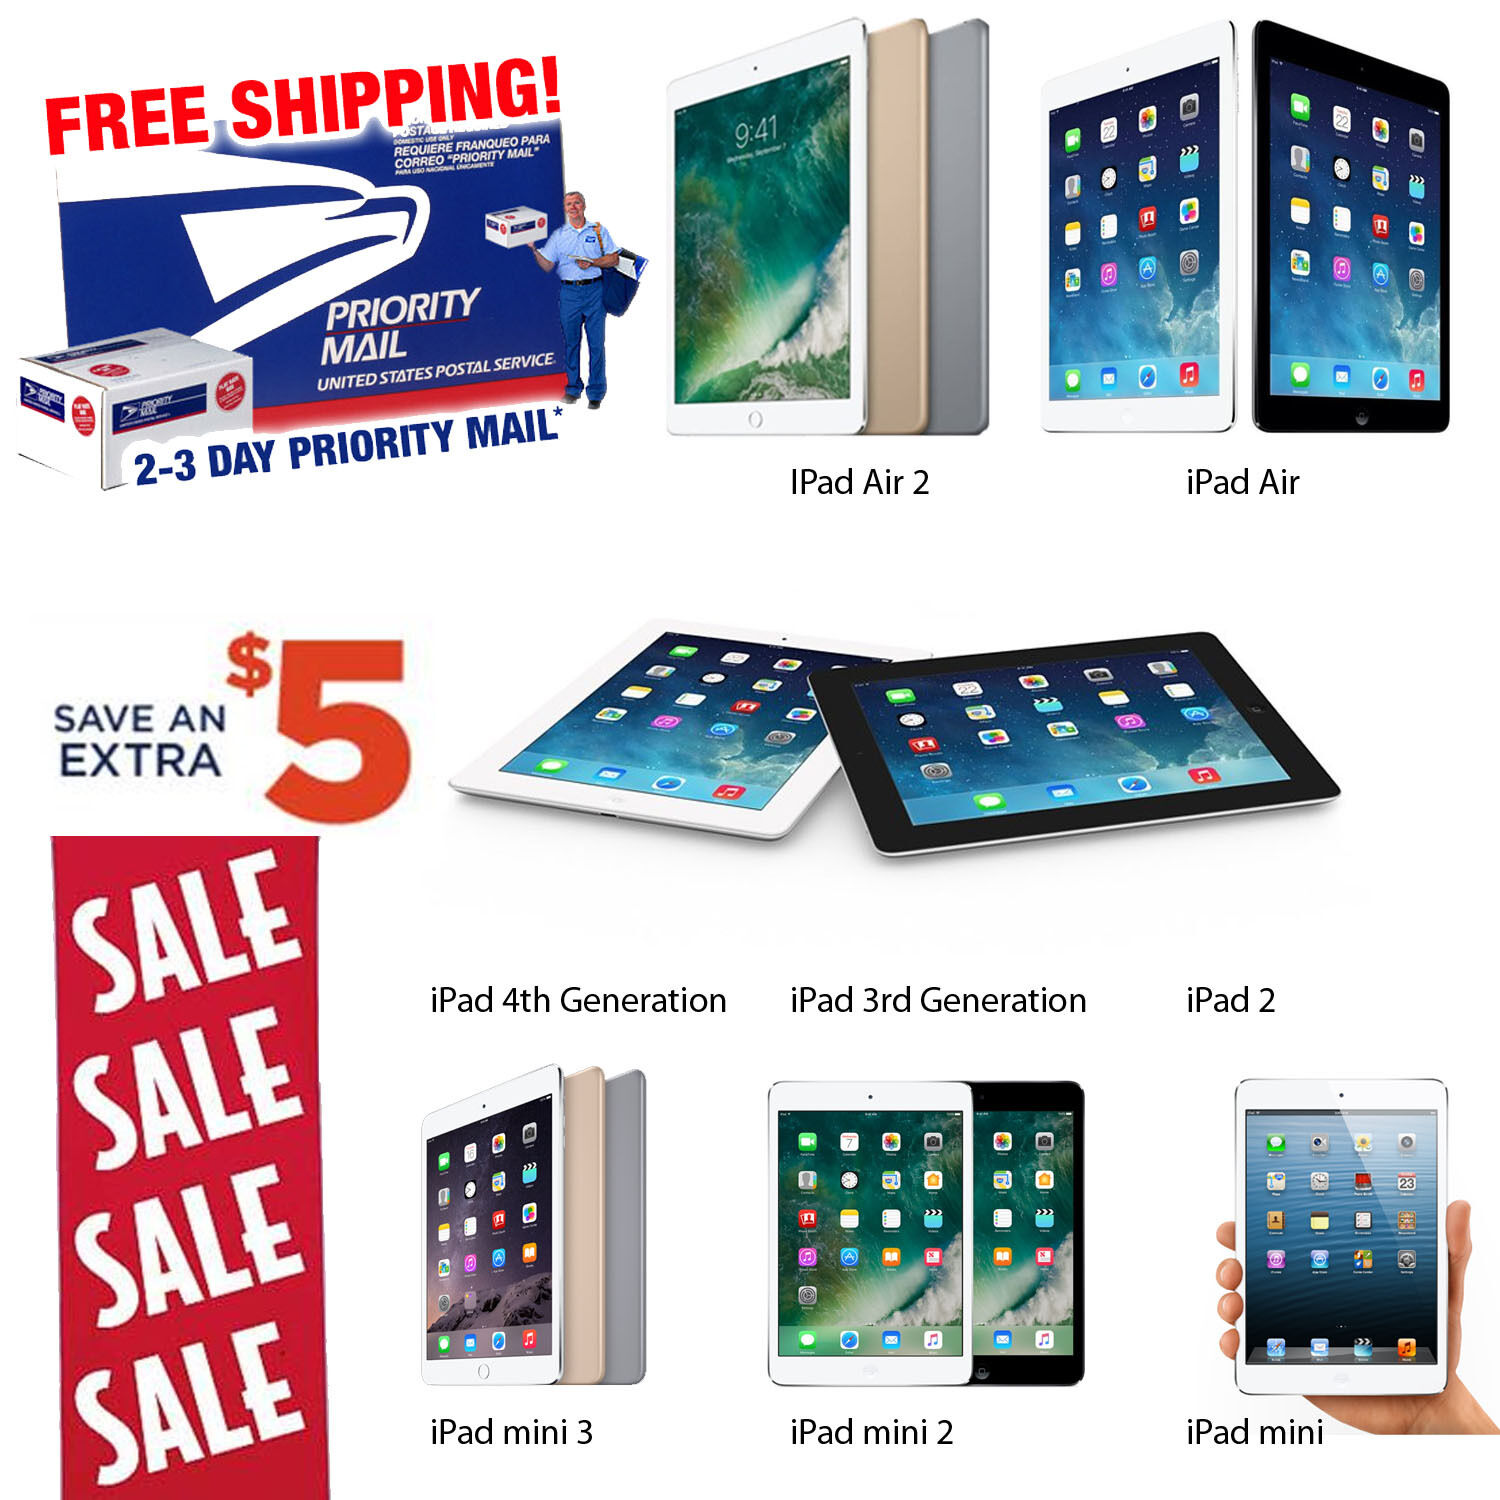 New Promo! iPad Air, mini, 2, 3 or 4th Gen 16GB 32GB 64GB 128GB Pro-Refurb WiFi